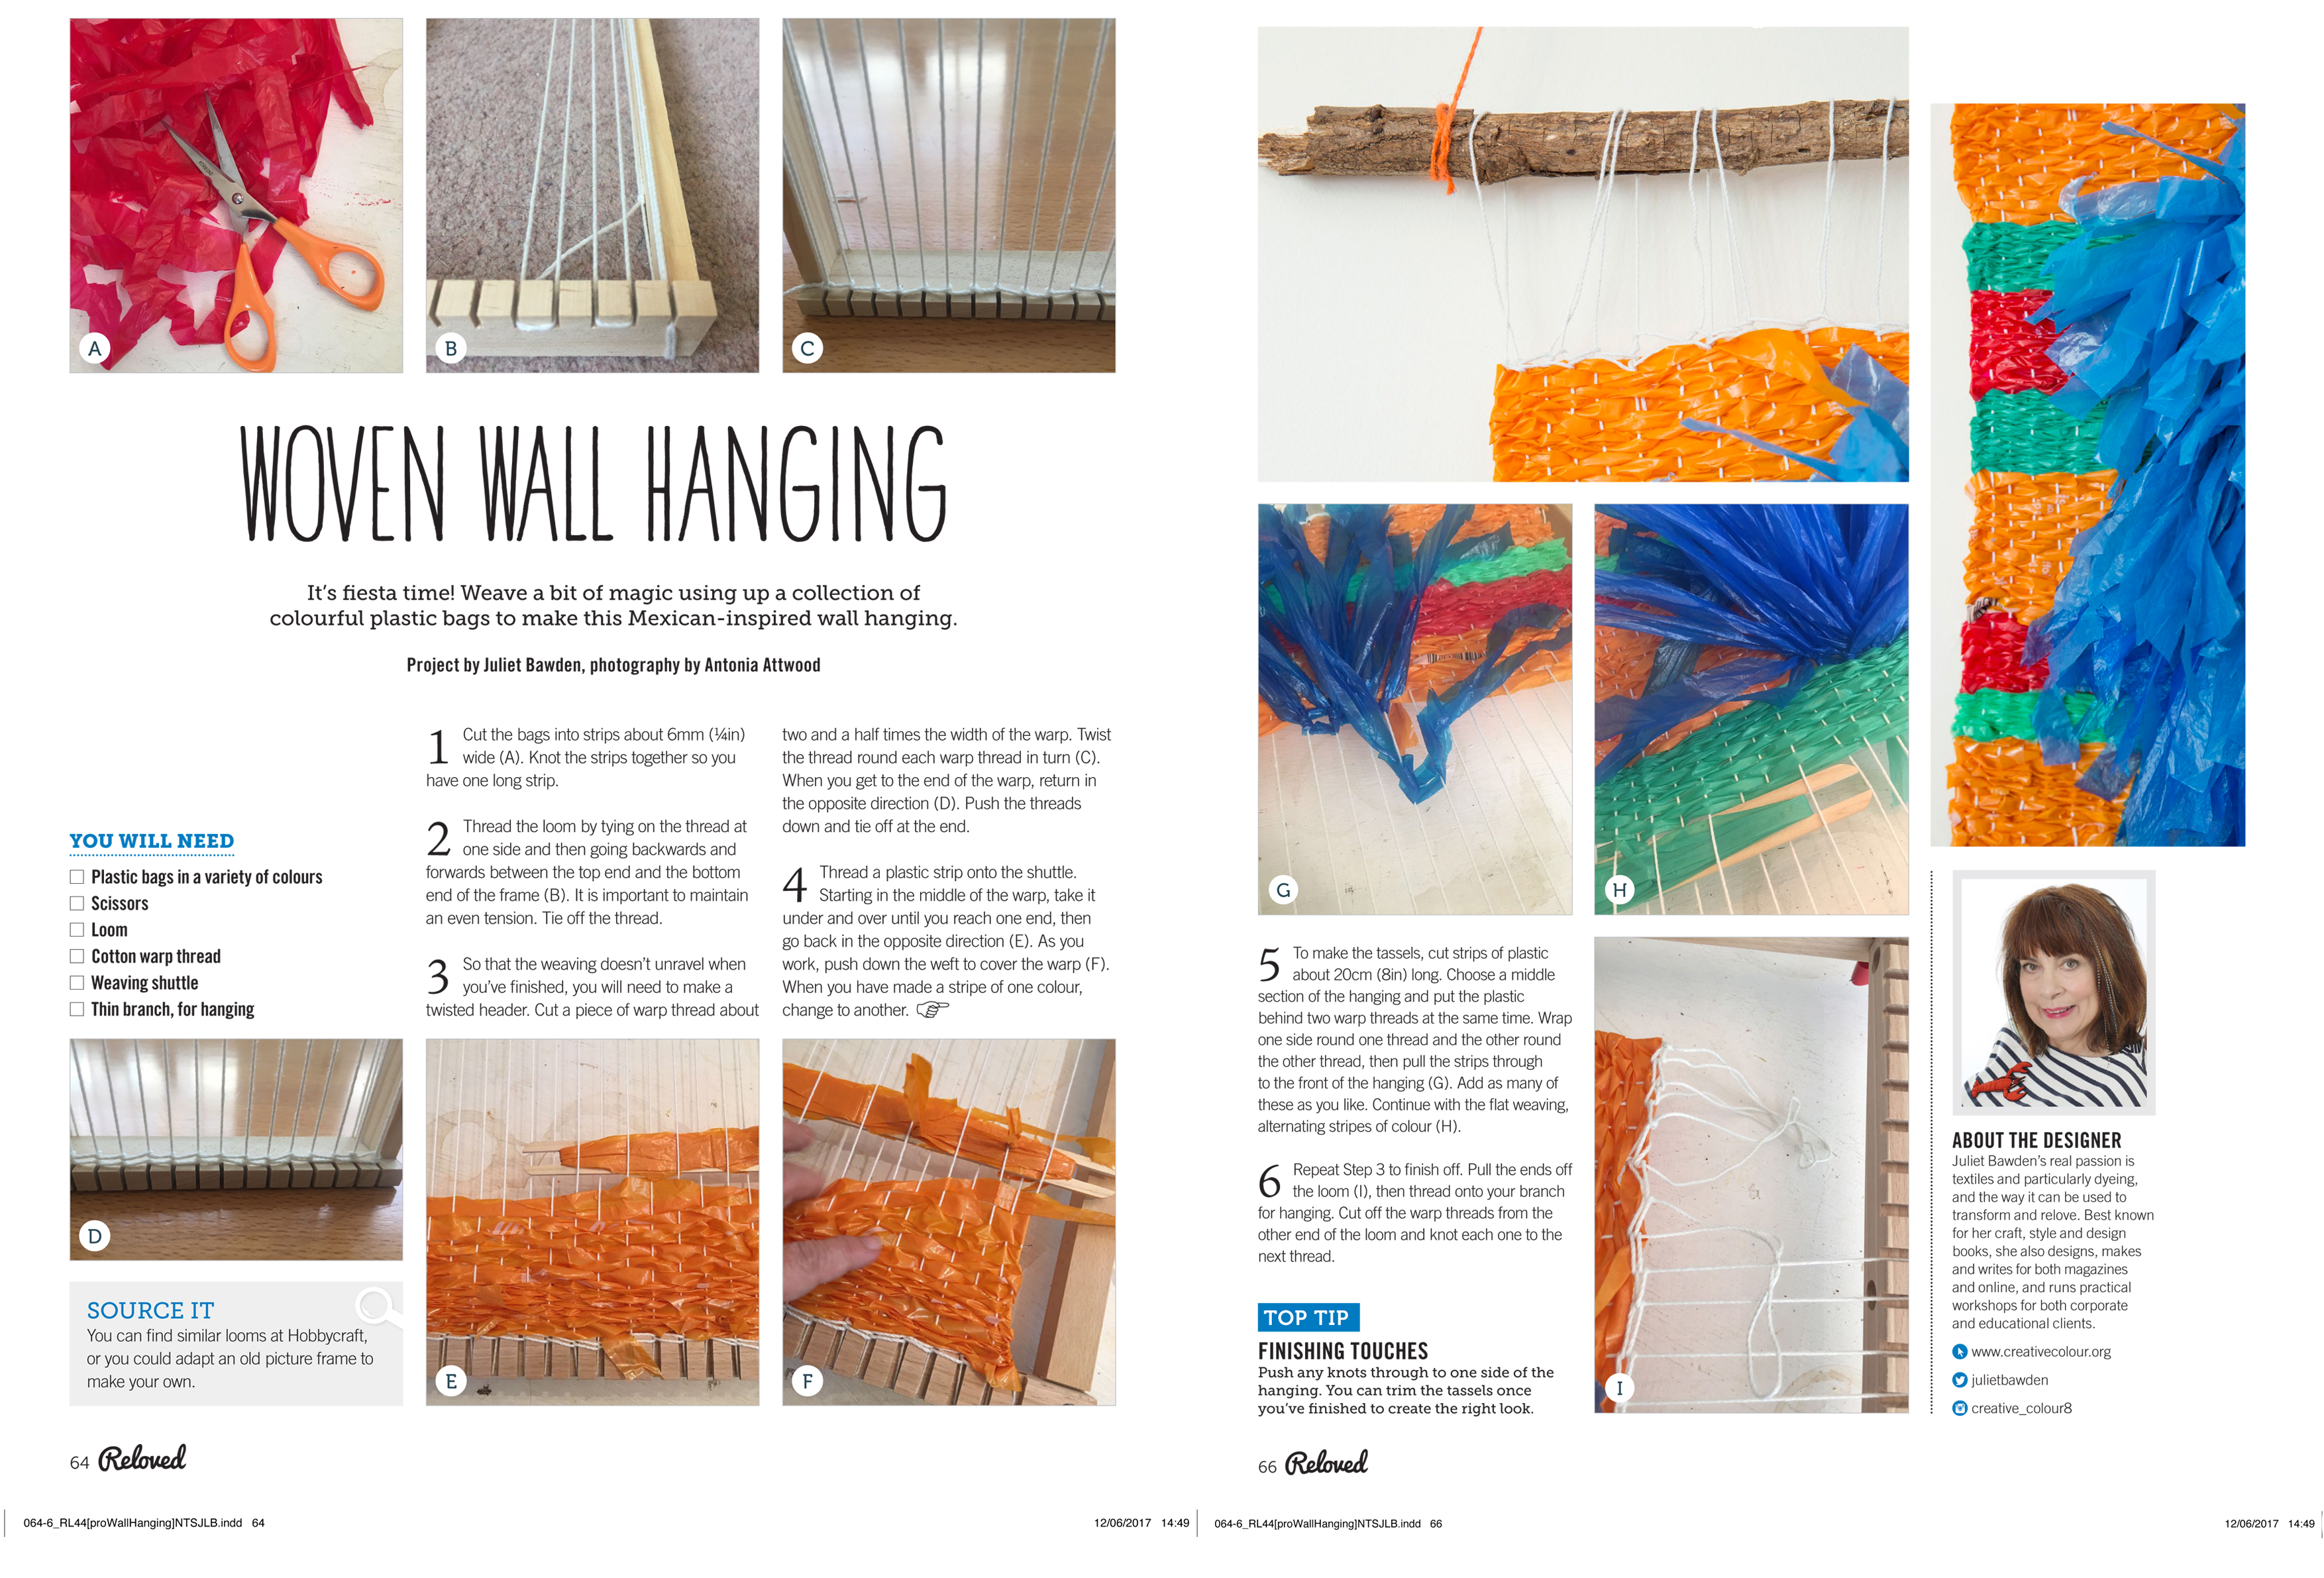 PlasticBagWallHangingSpread2